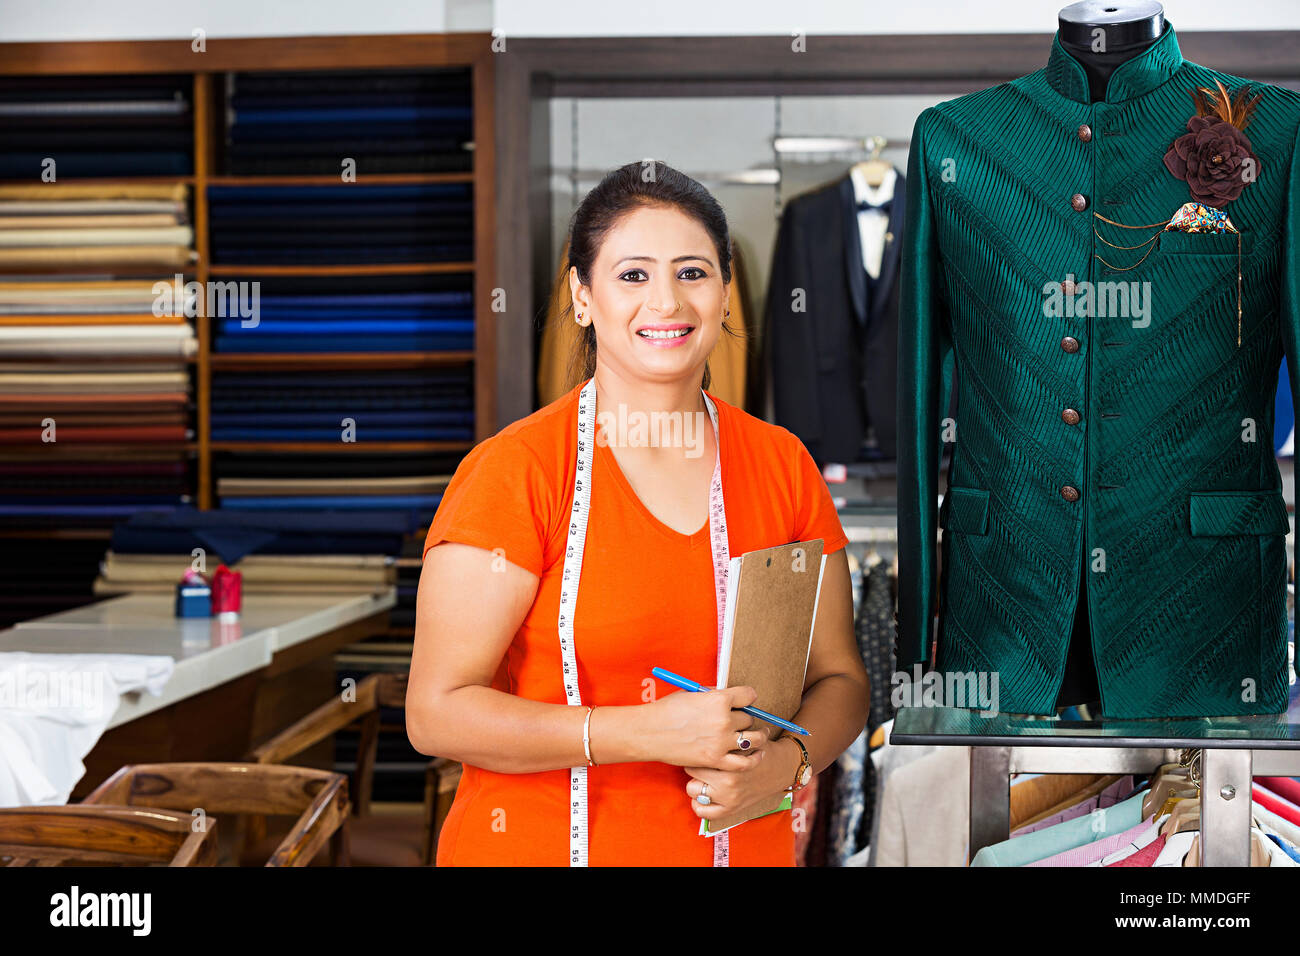 One Boutique Tailor Fashion Designer Working In Workshop Stock Photo Alamy